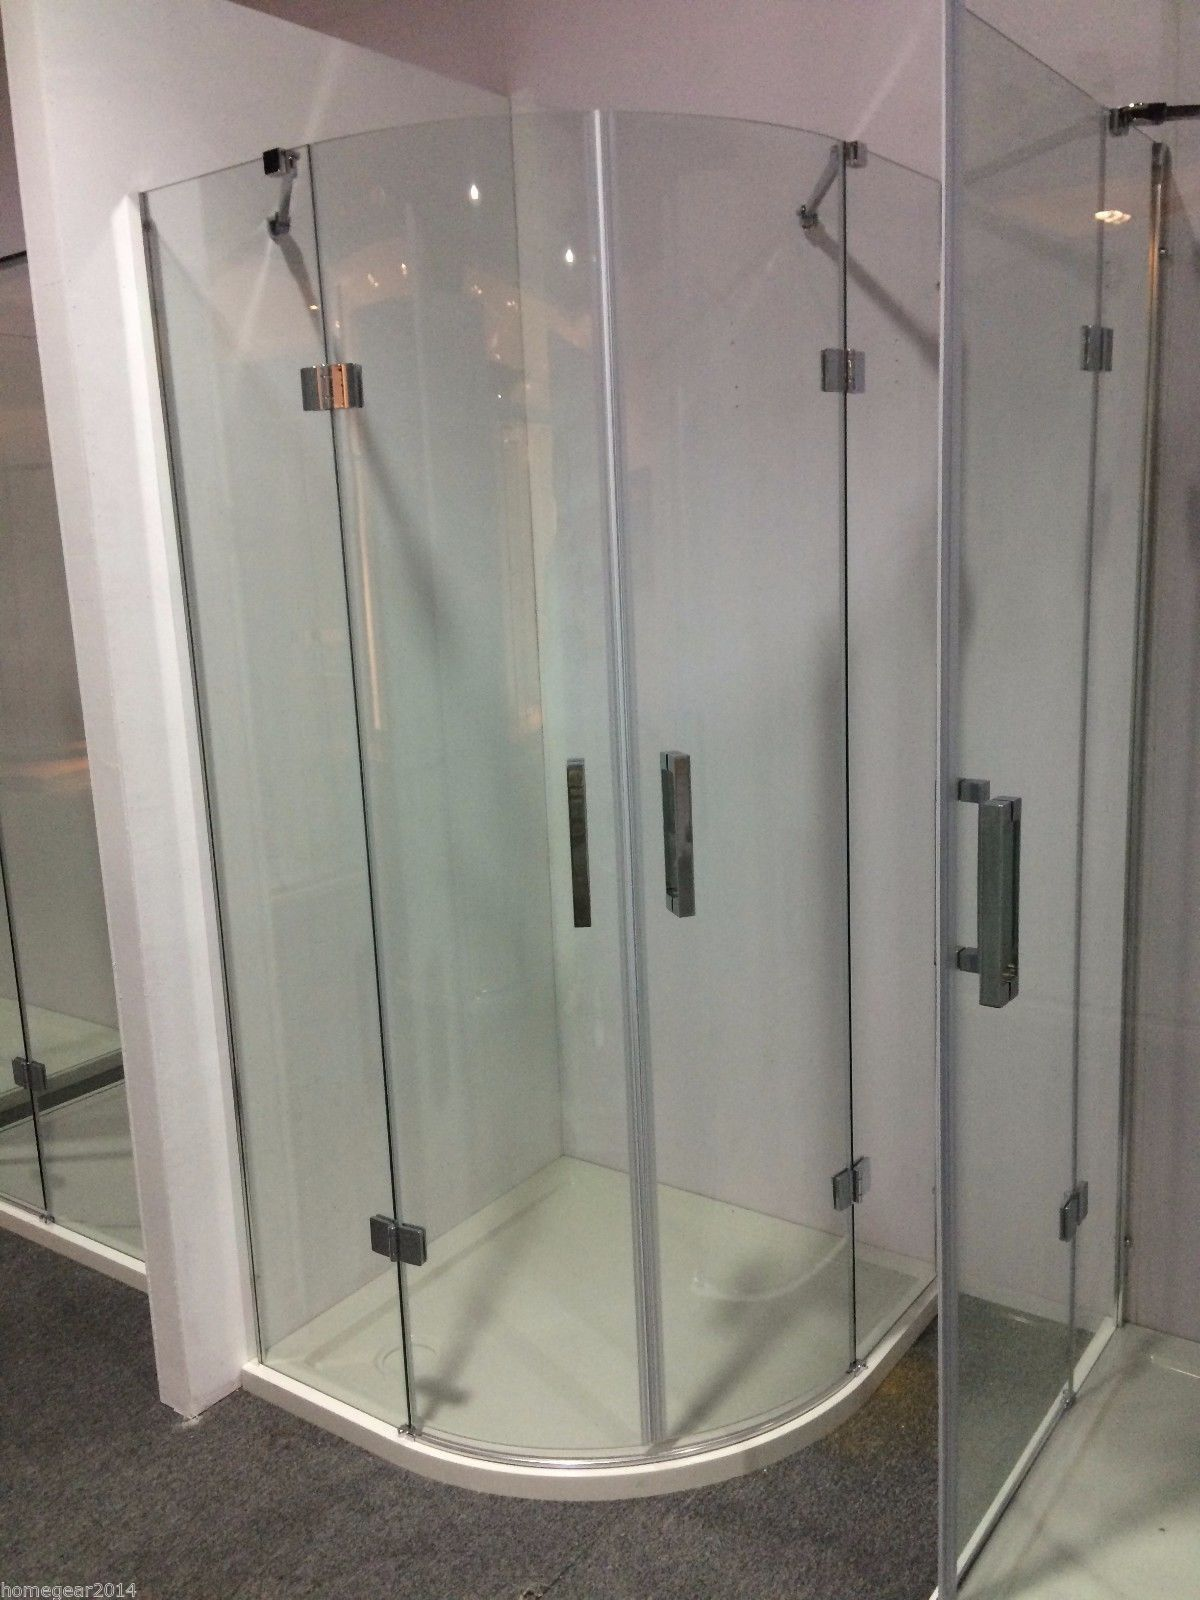 Frameless Glass Shower Screen Diamond Square Quadrant